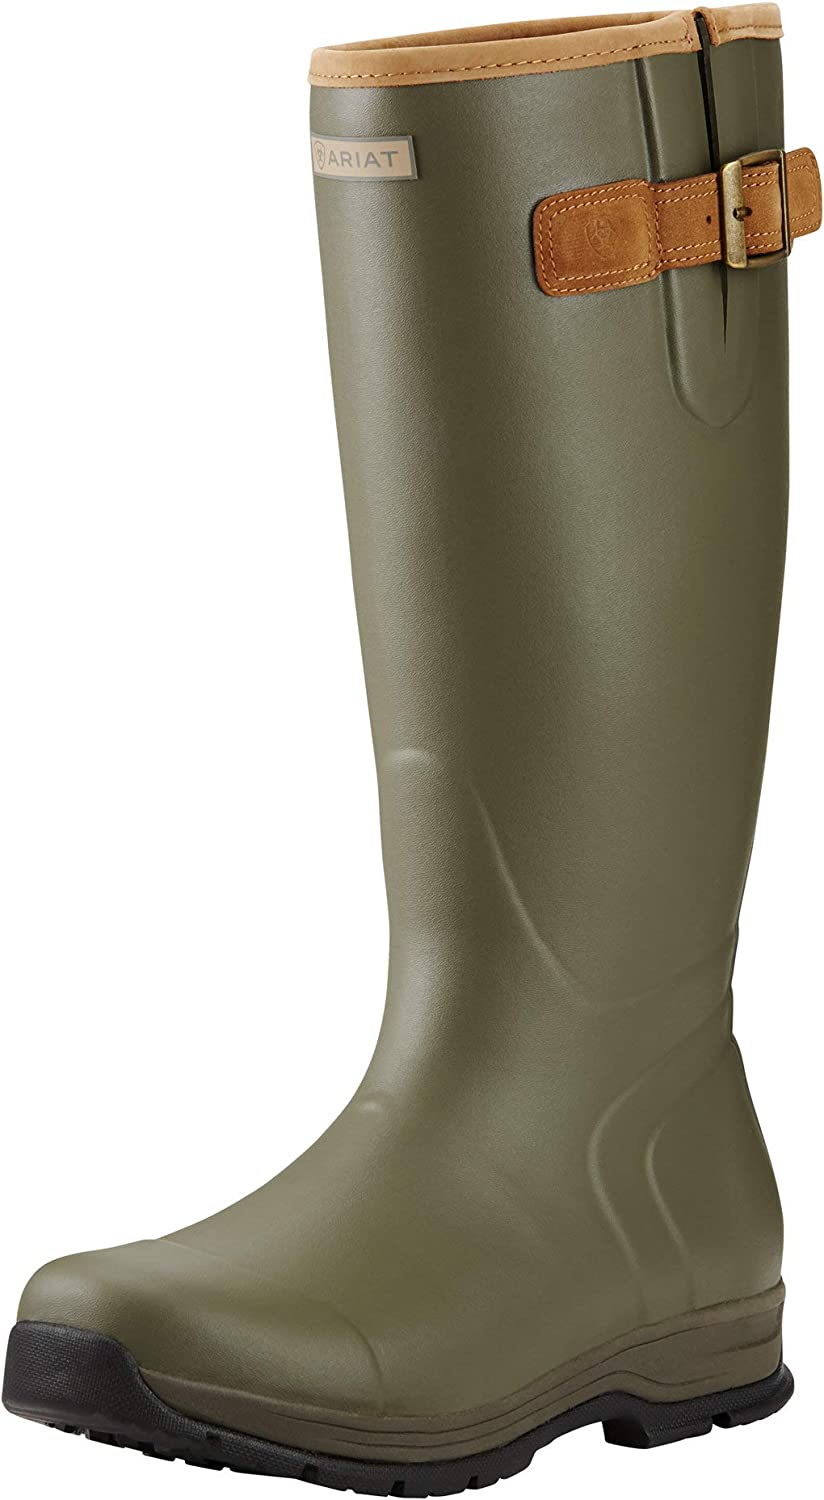 ARIAT Men's Burford Waterproof Rubber Boot